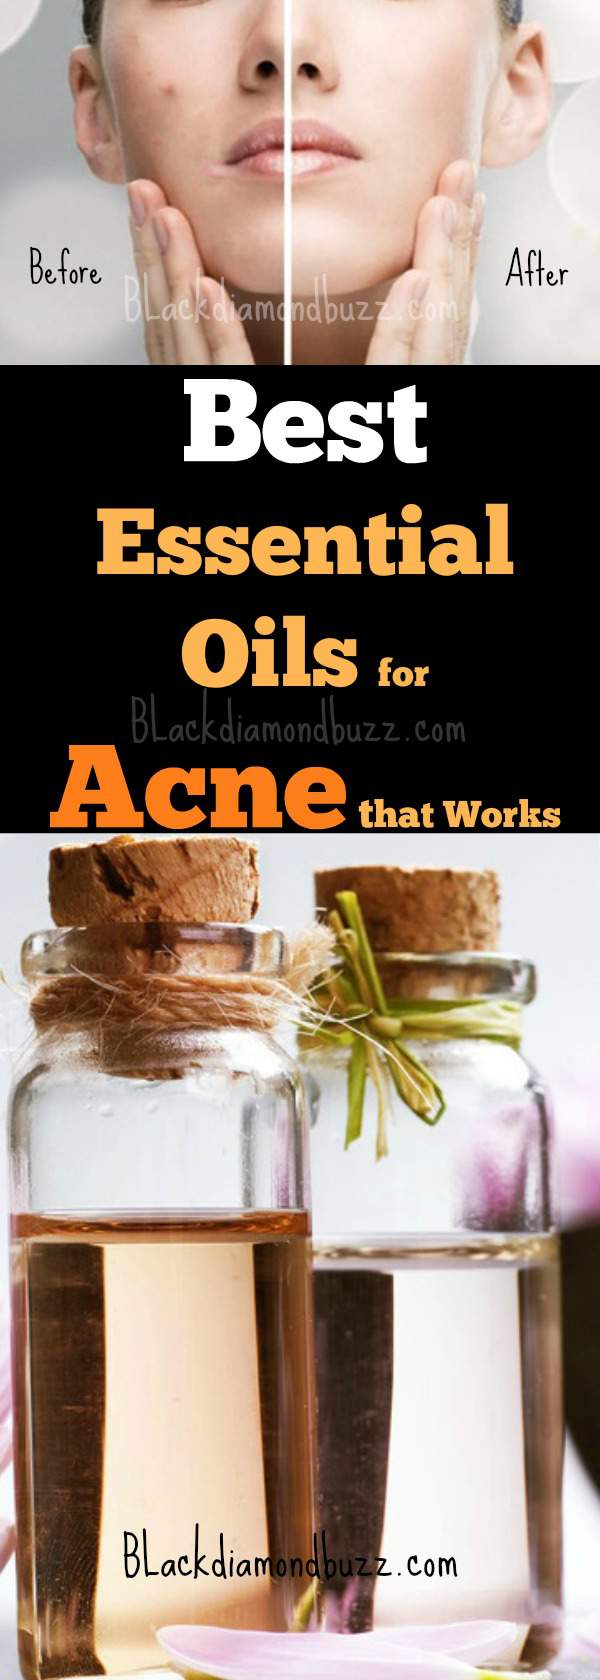 Essential oils for Acne and Pimples